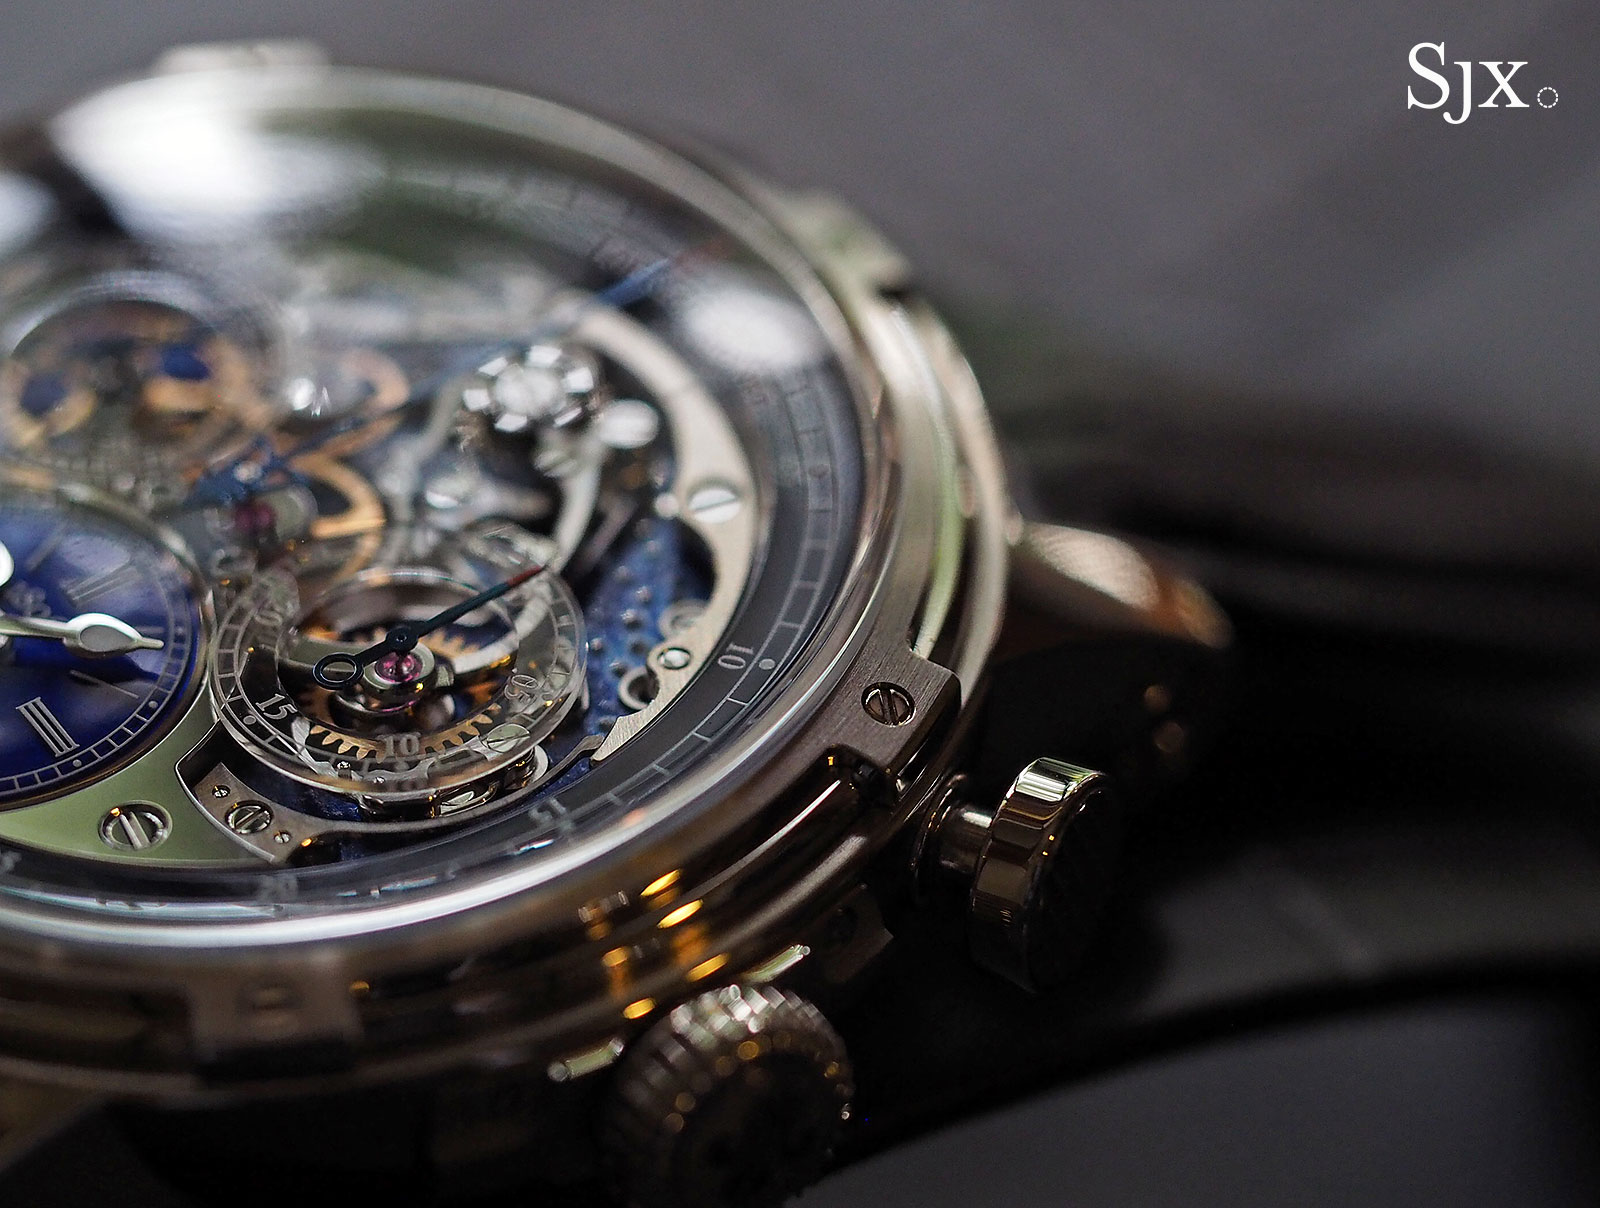 Louis Moinet Memoris 200th Anniversary 11